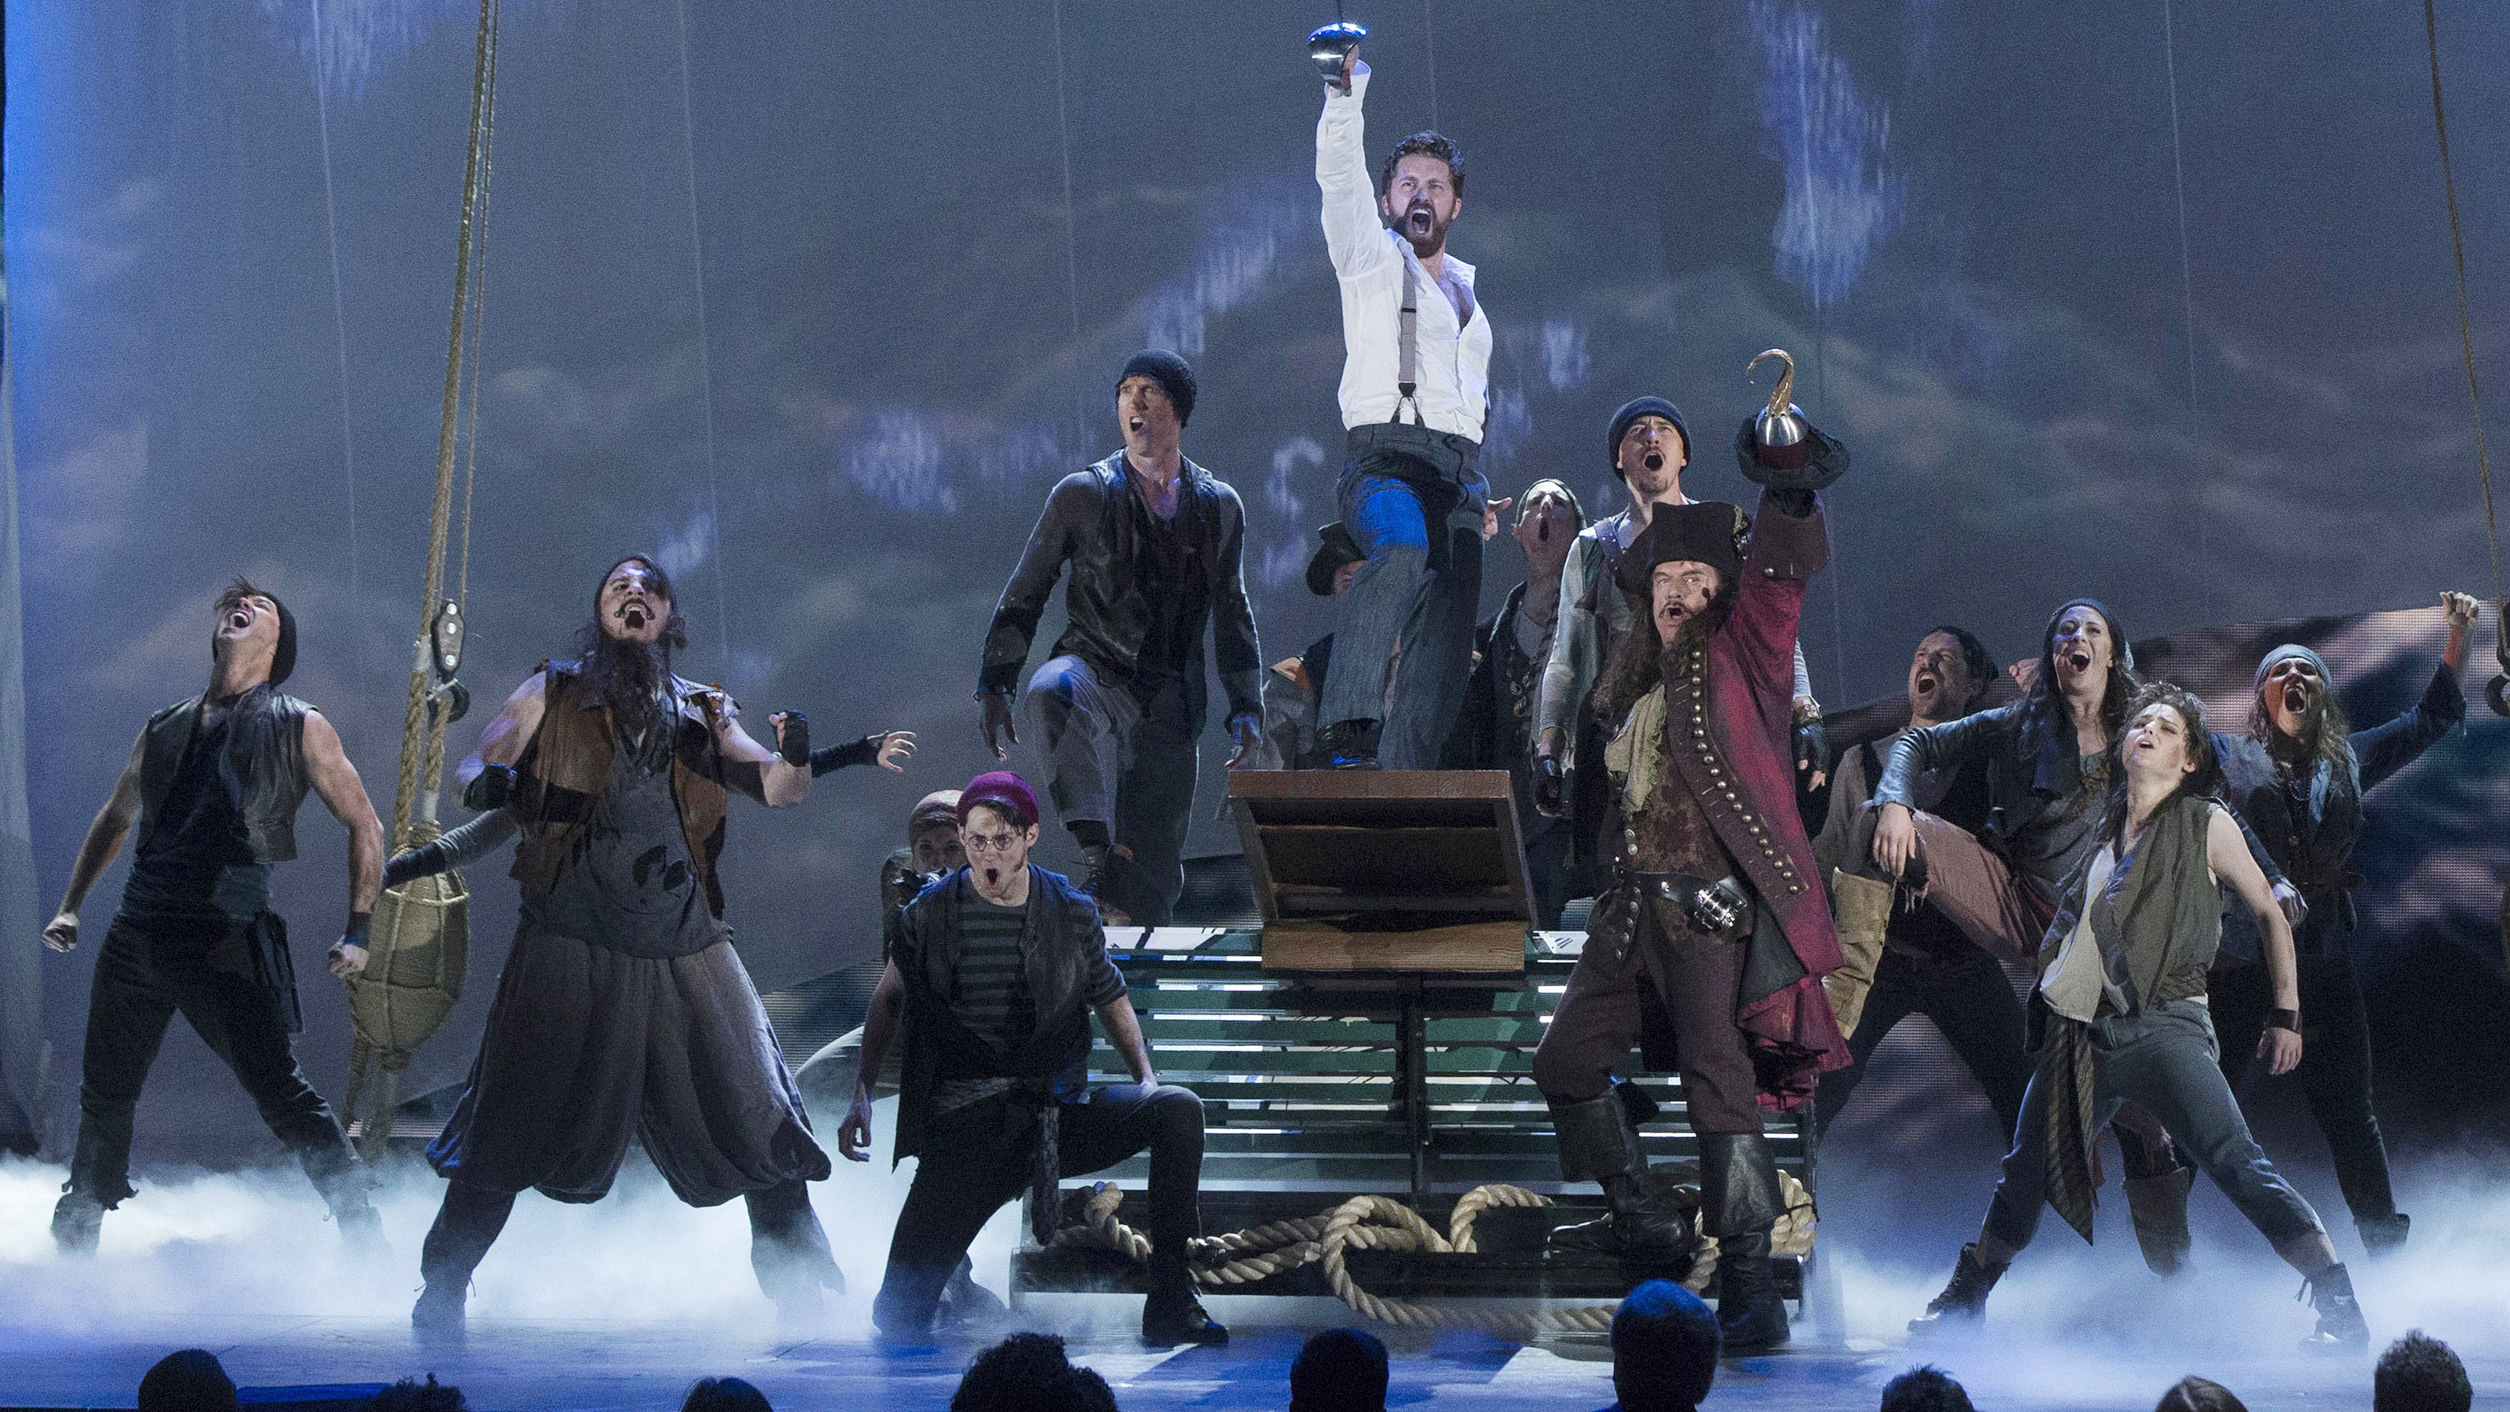 """The cast of the play """"Finding Neverland"""" performs during the American Theatre Wing's 69th Annual Tony Awards at the Radio City Music Hall in Manhattan, New York June 7, 2015.  REUTERS/Lucas Jackson - RTX1FKQR"""